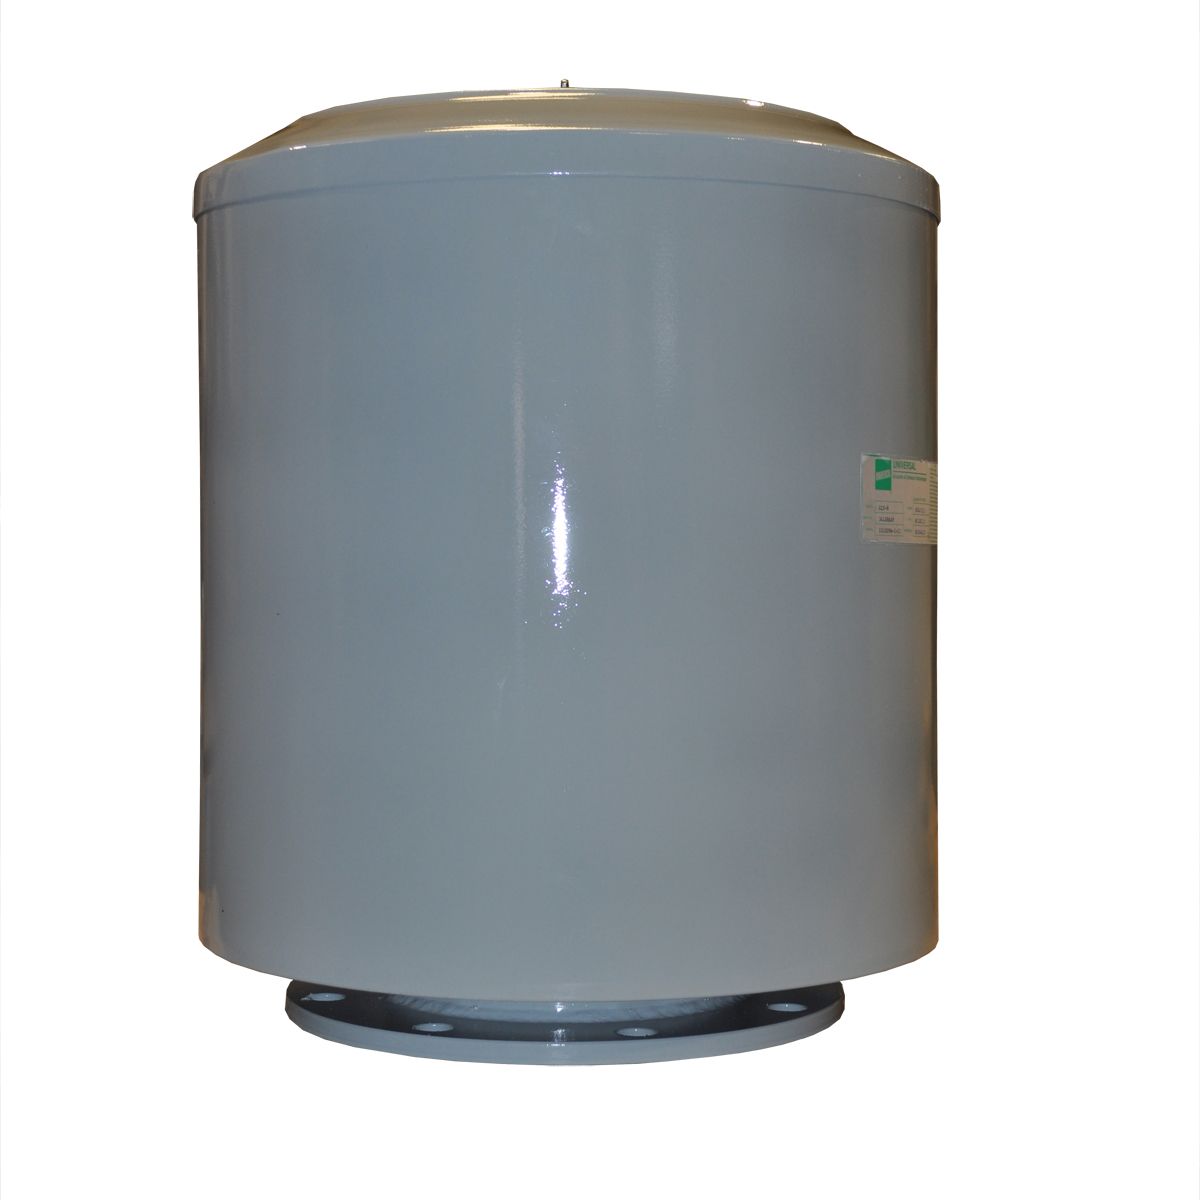 Air Filters For Blowers : Blower air filter ccf f